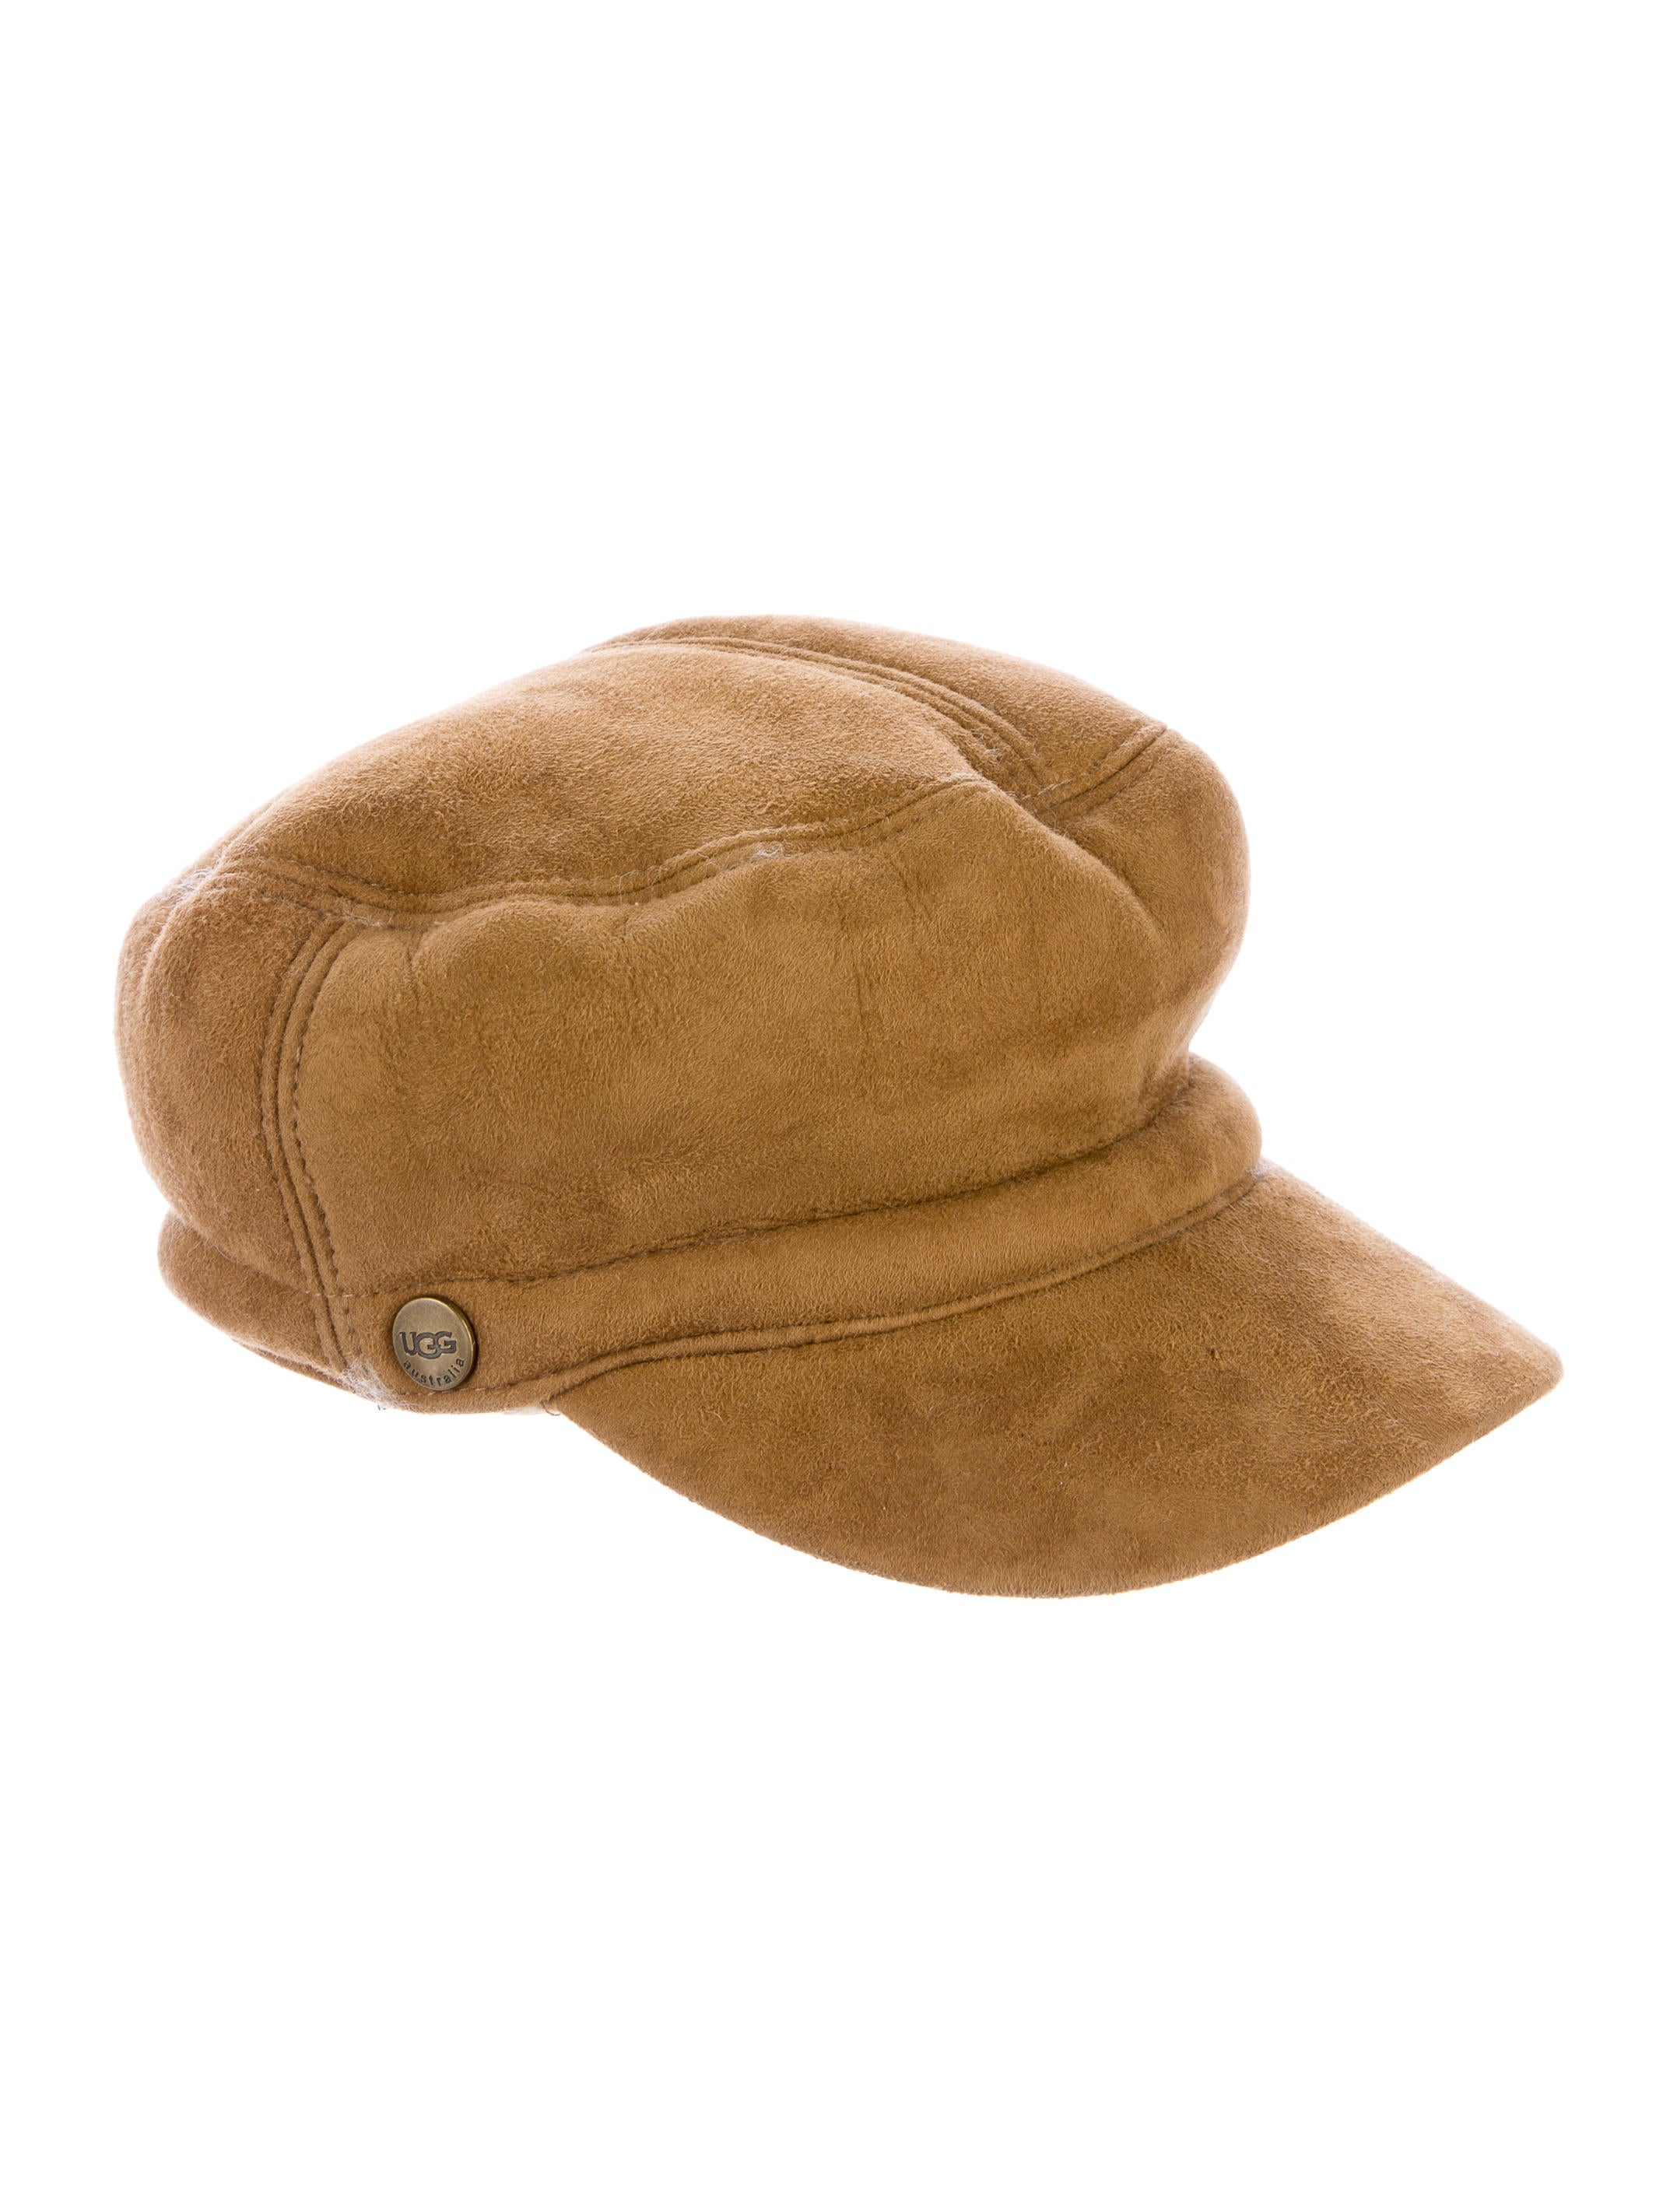 dff58000 UGG Australia Suede Shearling Hat - Accessories - WUUGG21974   The ...